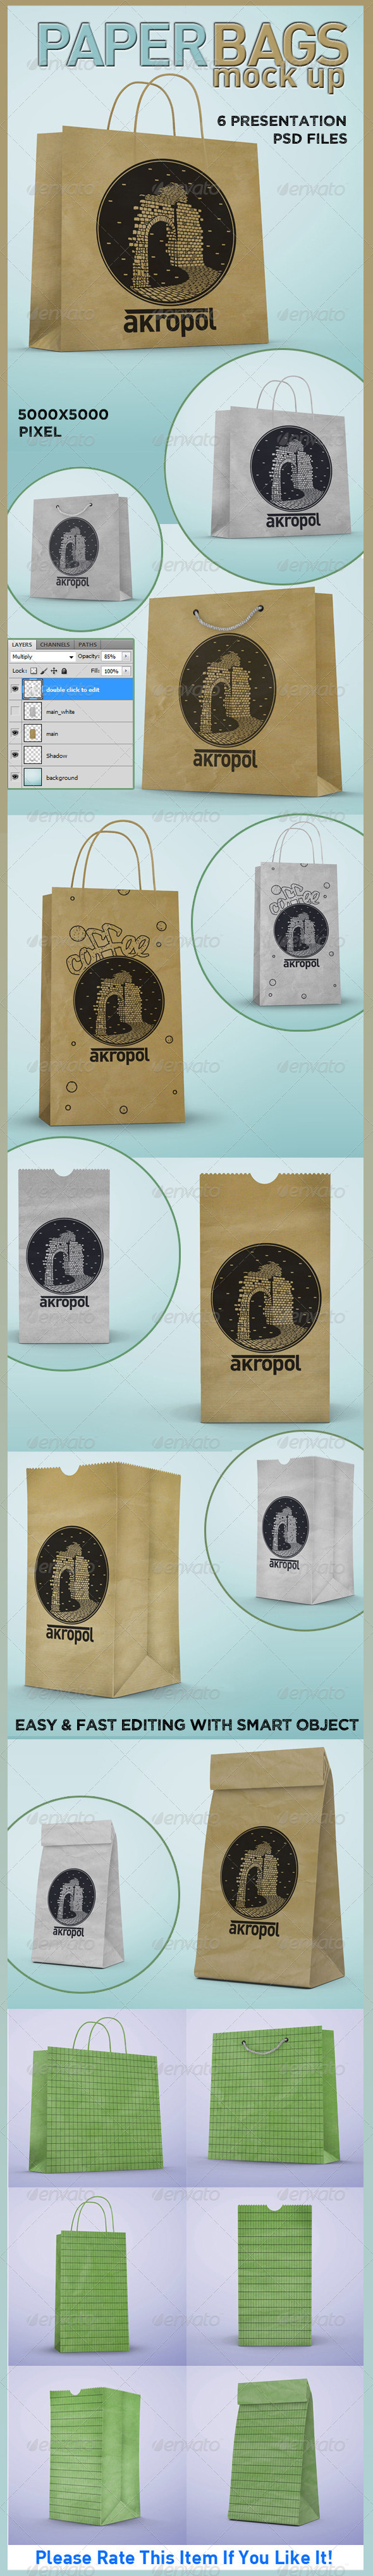 Paper Bags Mock Up - Product Mock-Ups Graphics